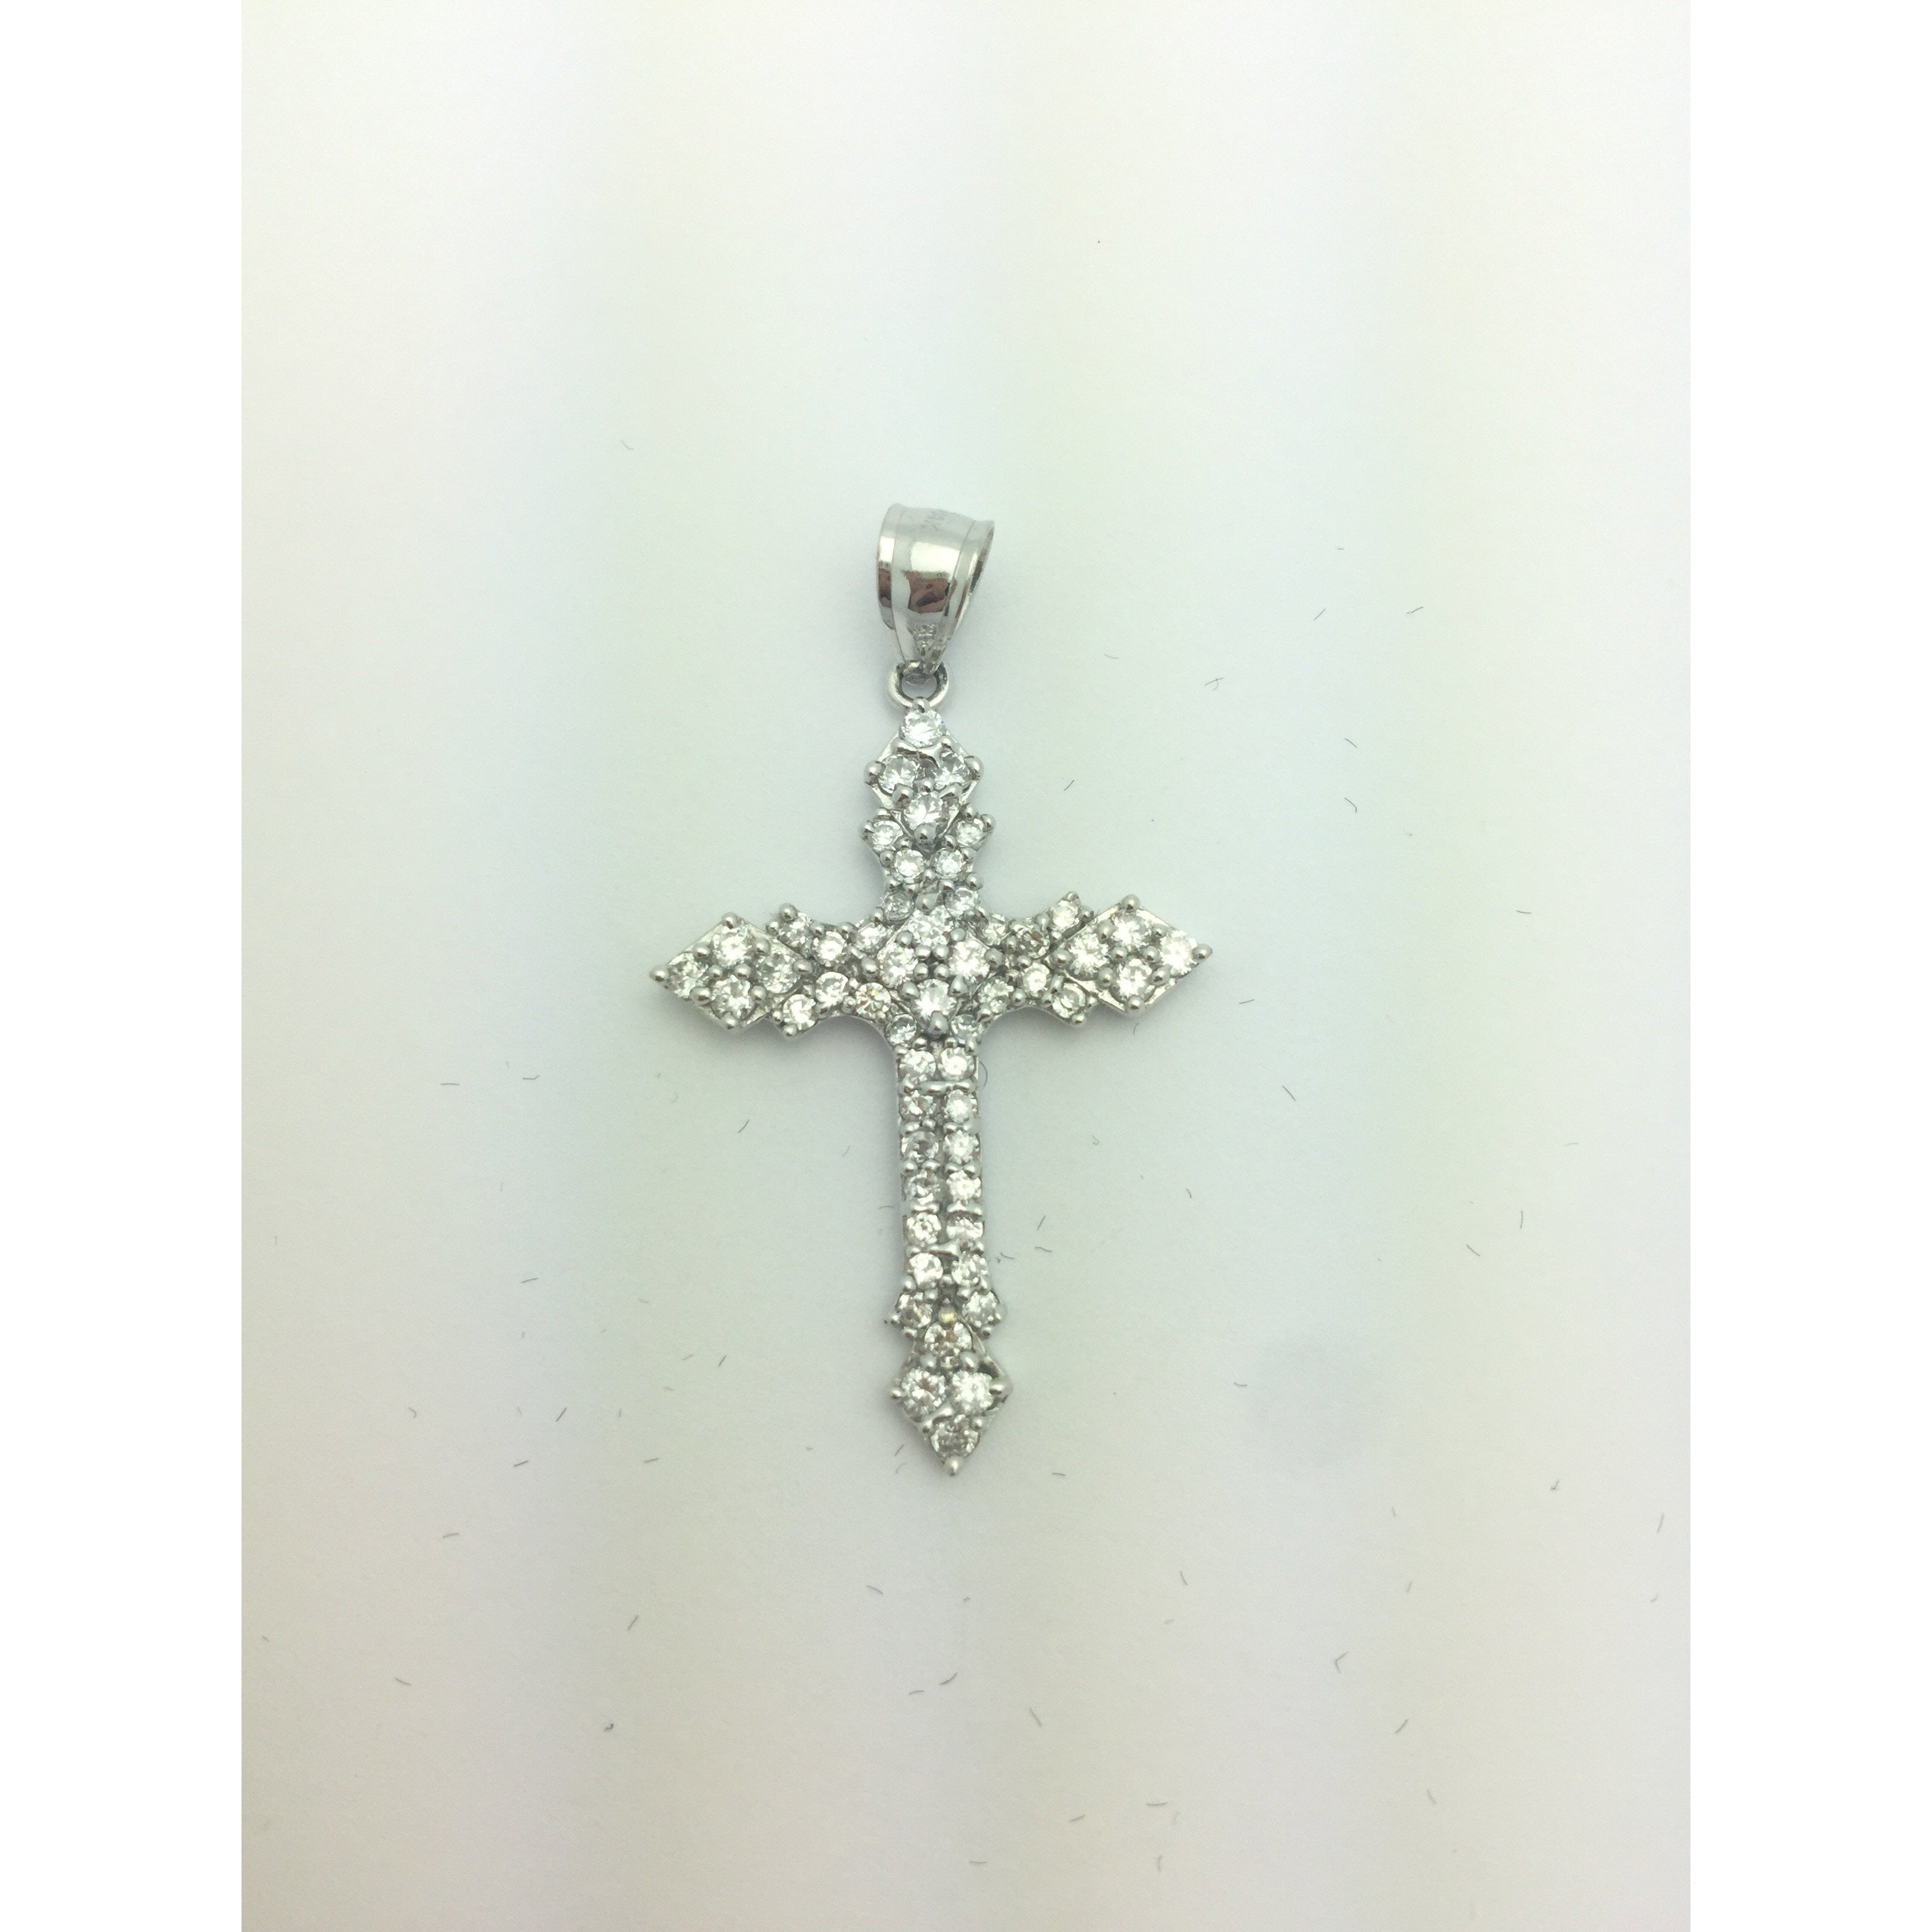 CHAR016 14K WHITE GOLD CROSS PENDANT WITH CZ STONES